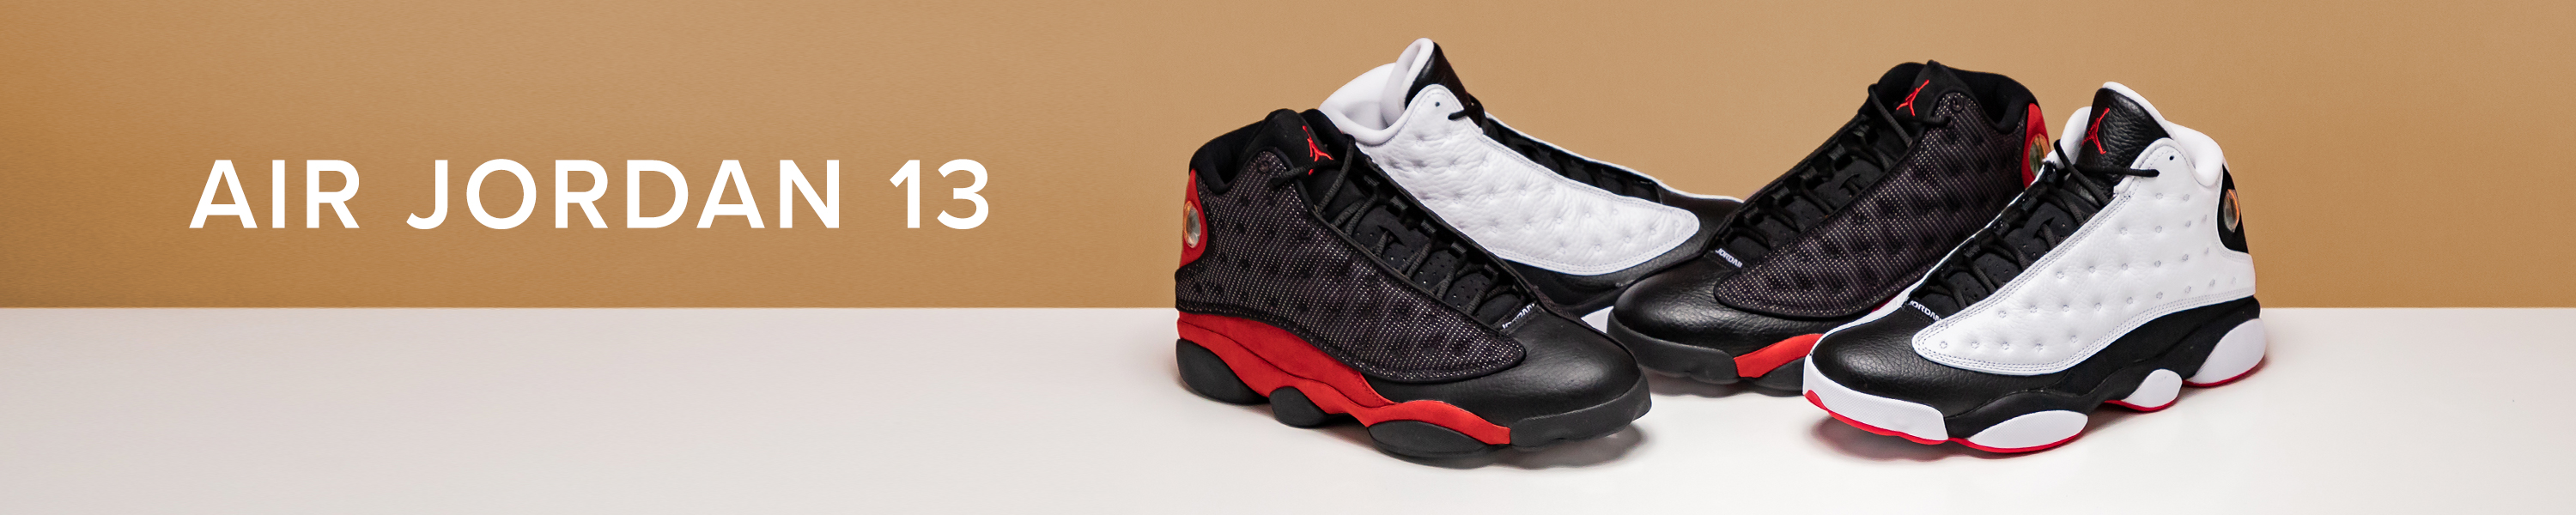 9056074a515dd6 Amazon.com  The Sneakershop  Air Jordan 13